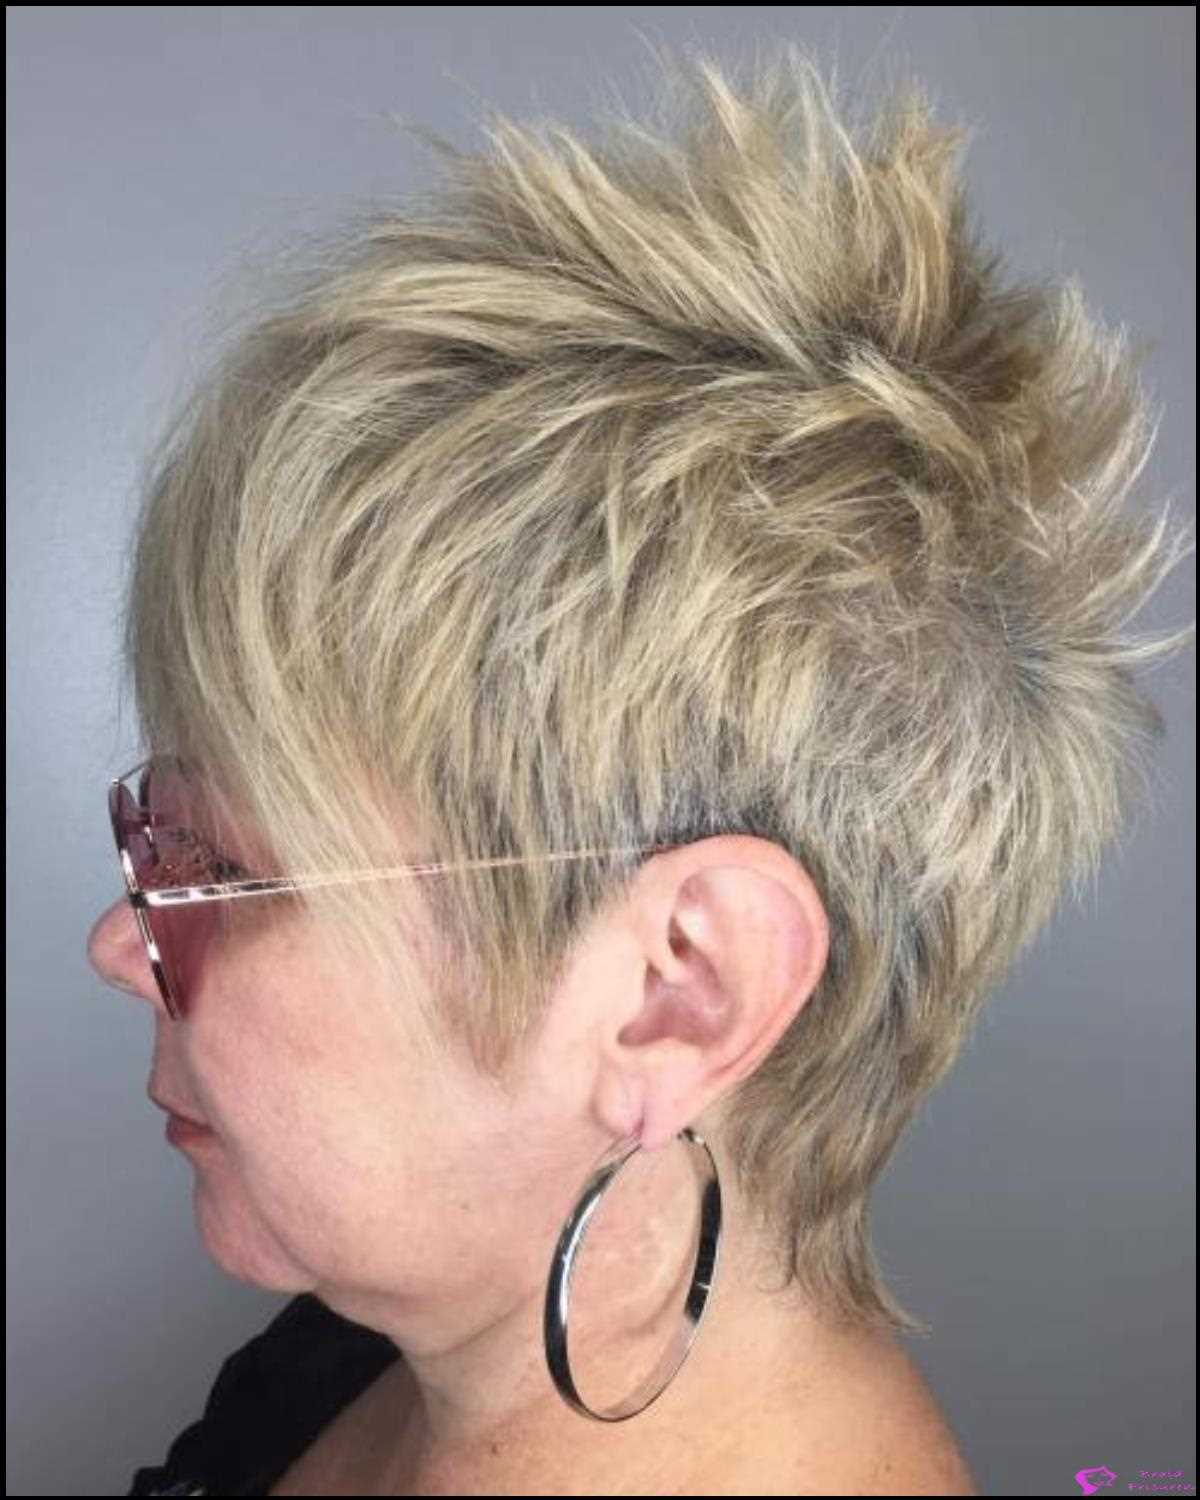 40: Ash Blonde Spiked Pixie